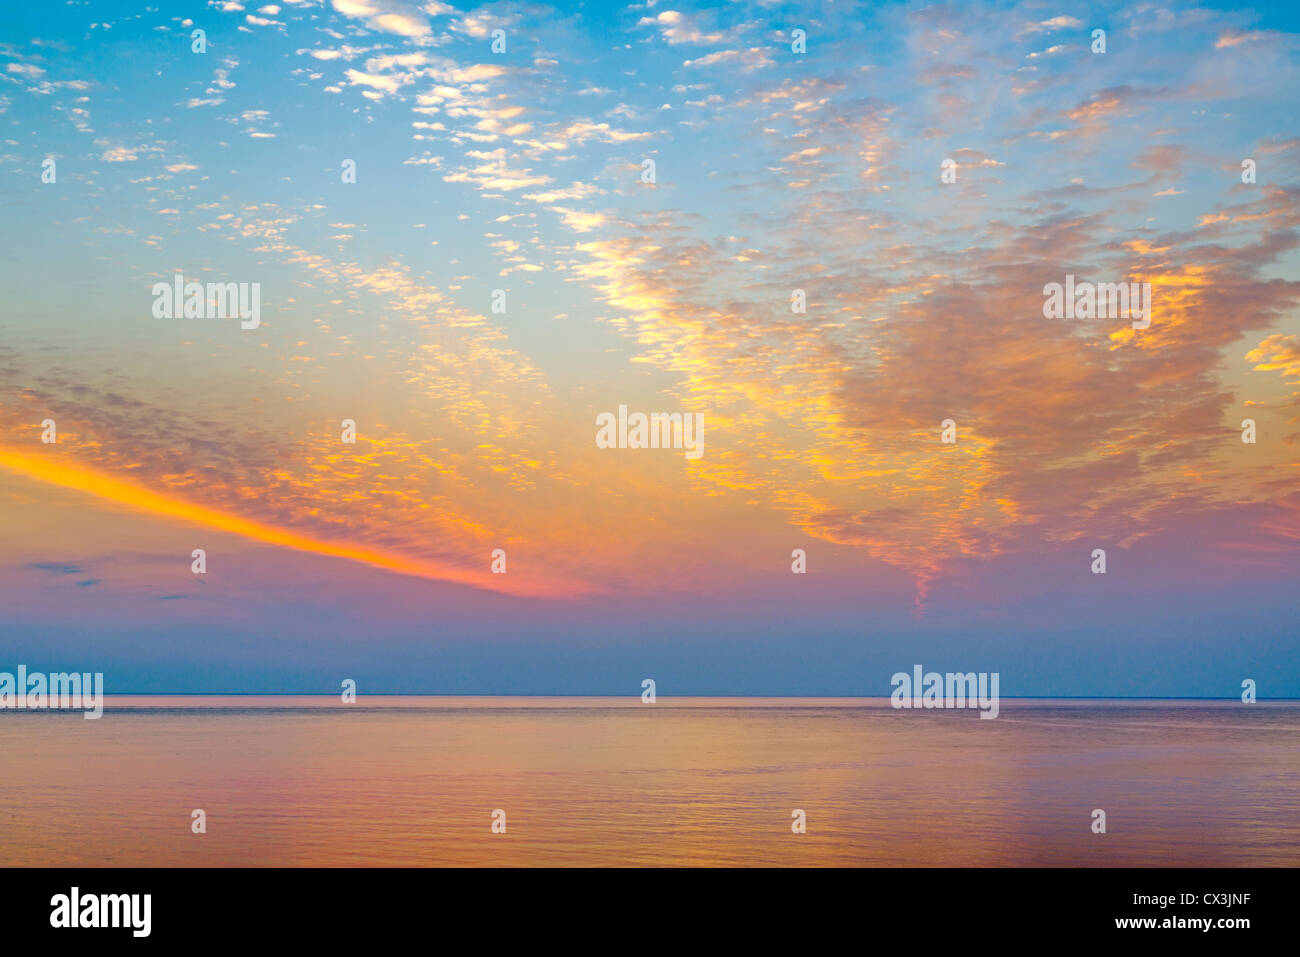 Sunrise over the ocean. - Stock Image